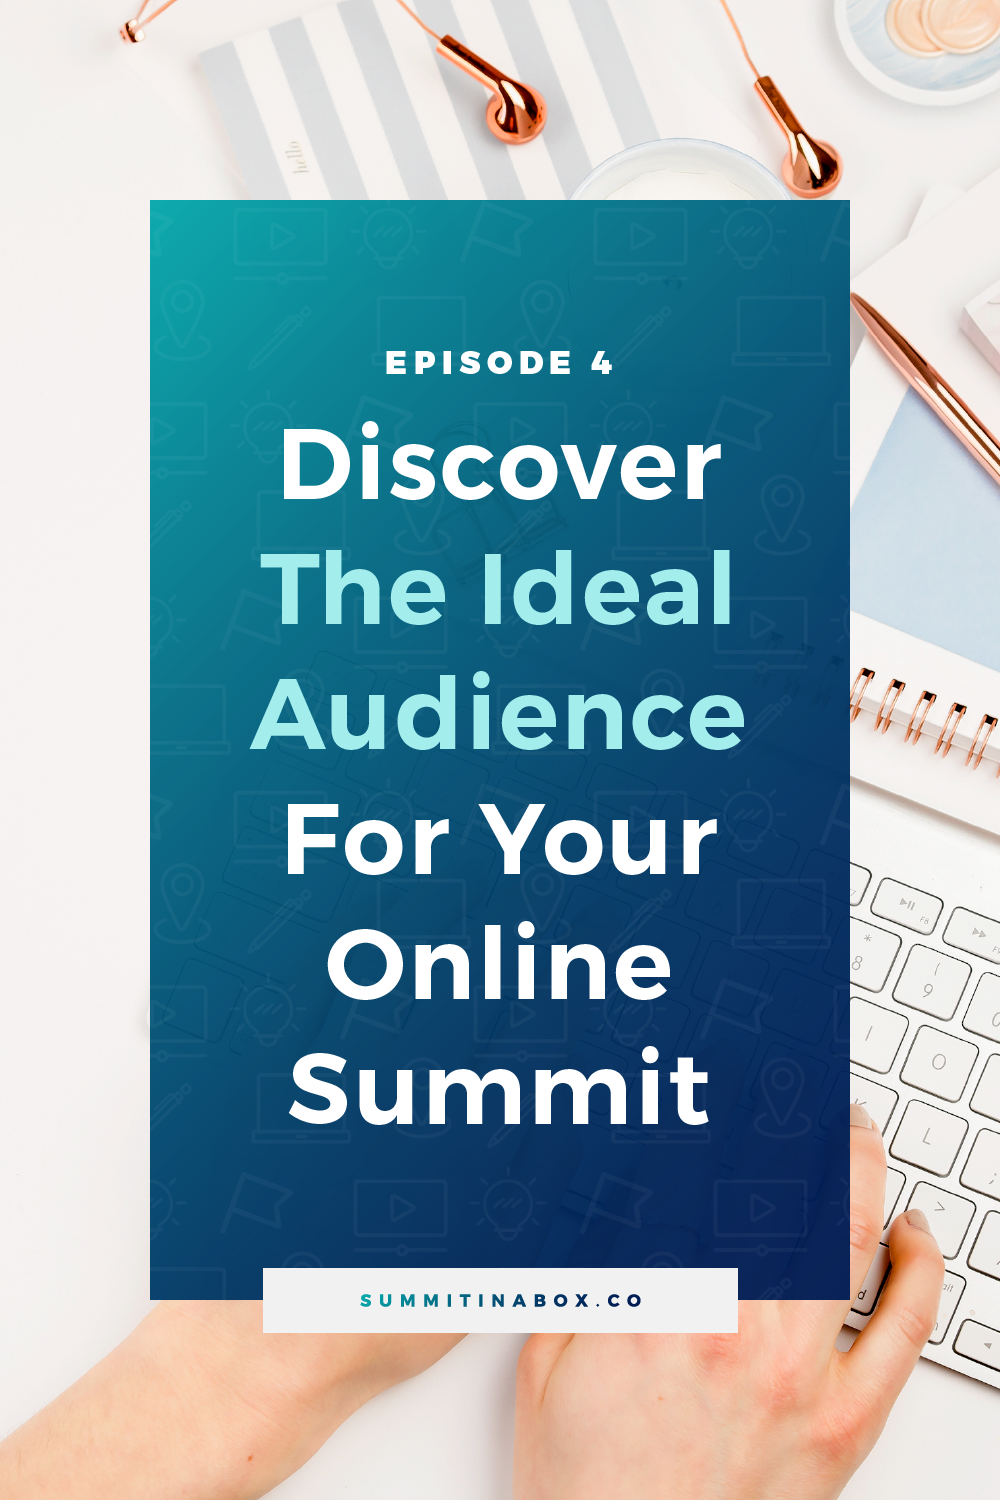 The audience you host your online event for can make or break your success. Let's cover how to choose the best virtual summit audience for you.